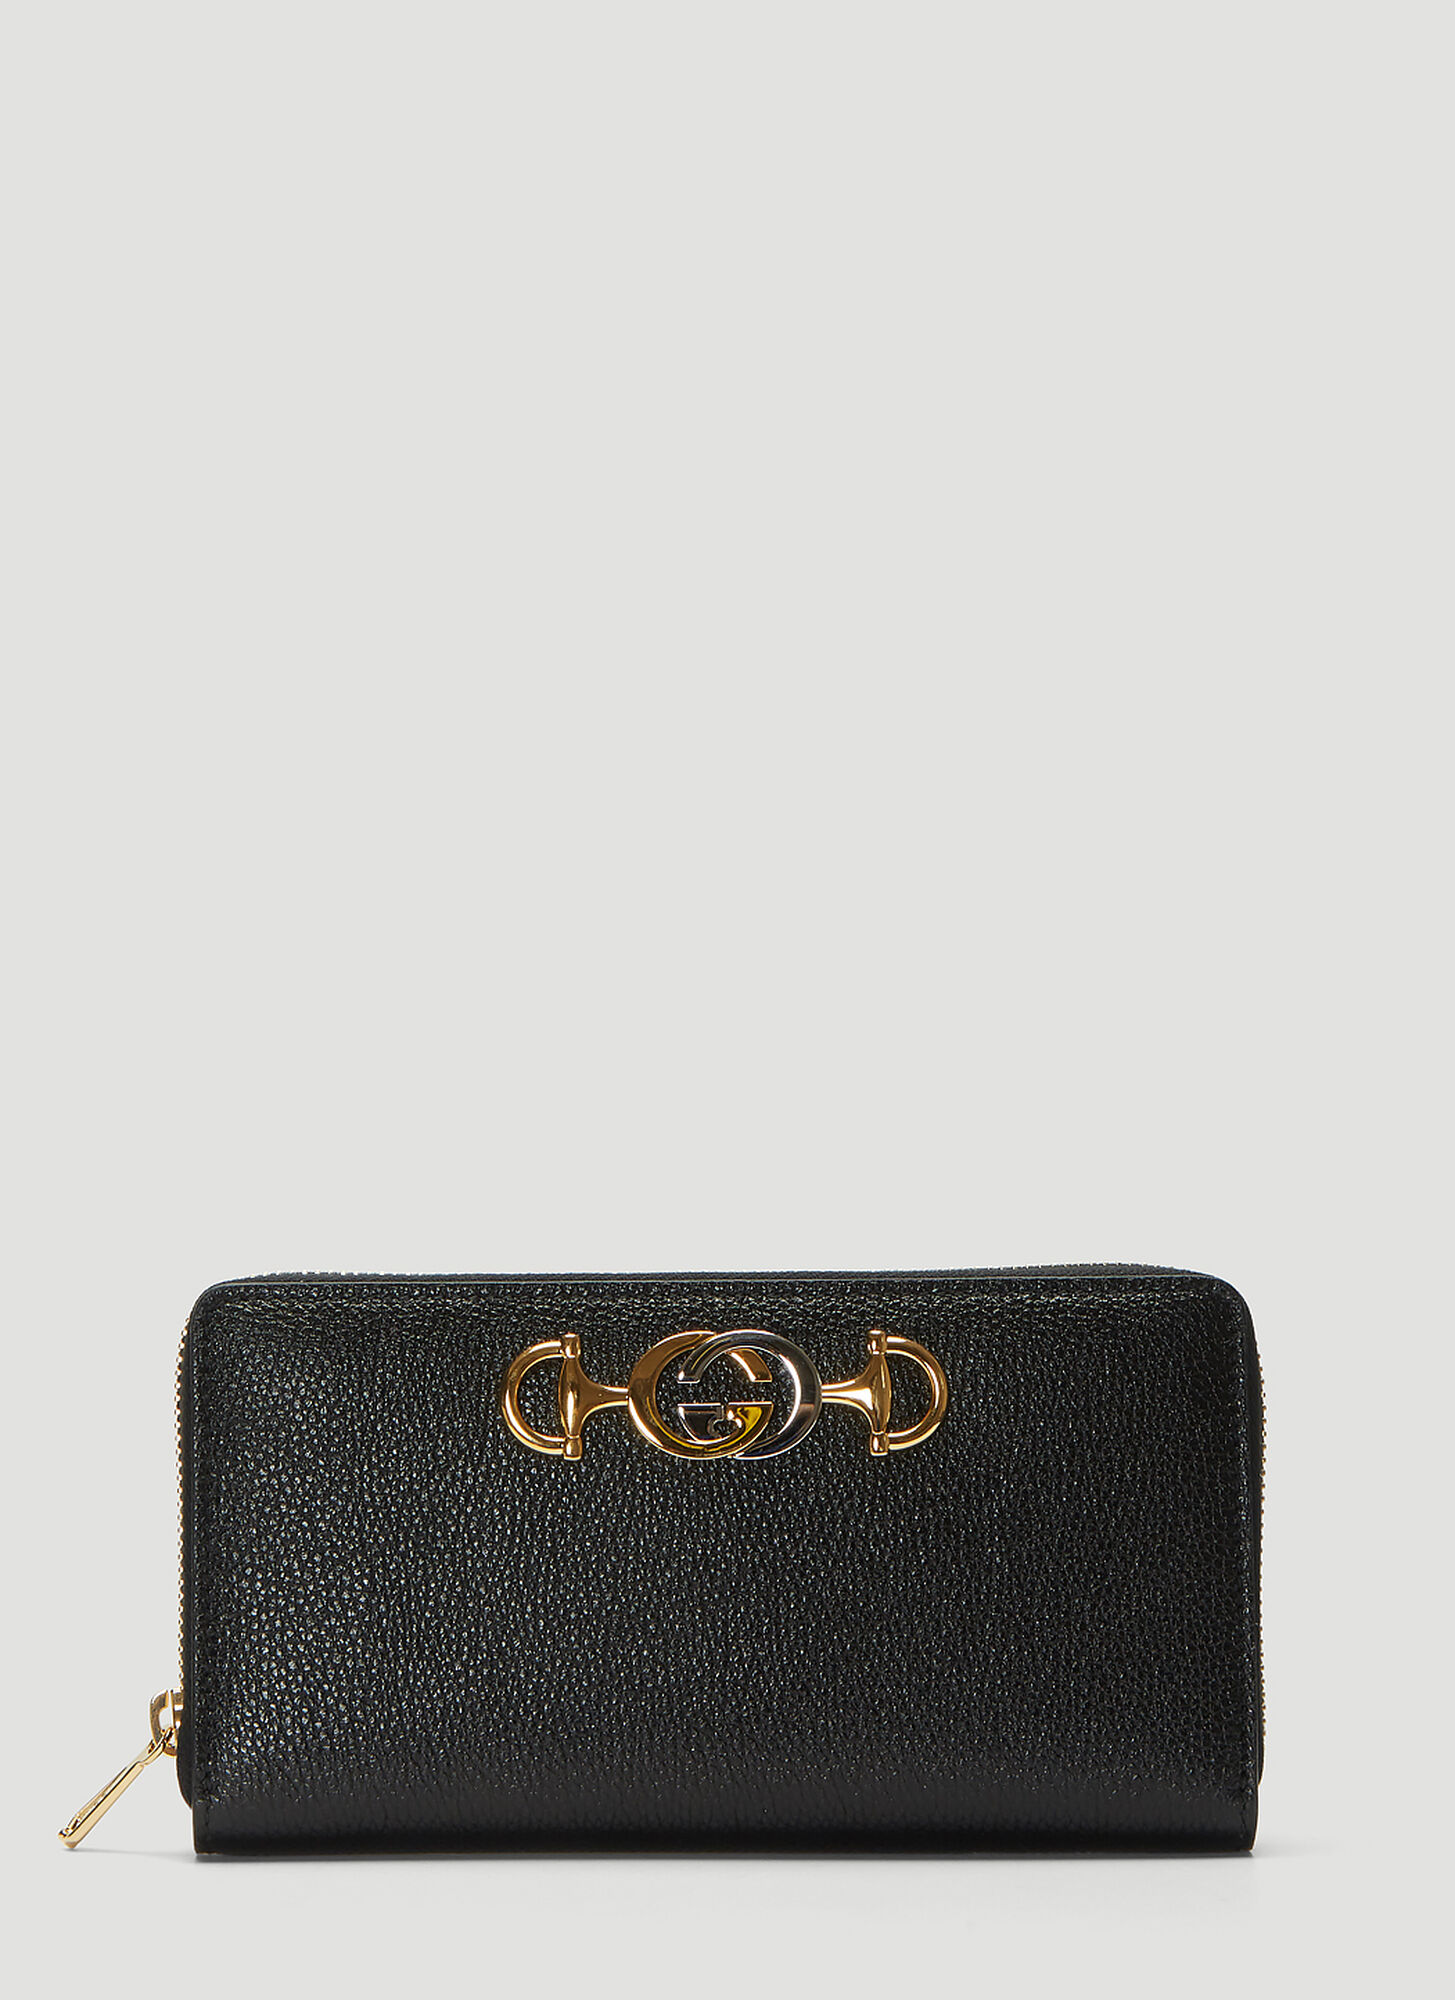 Gucci Zumi Leather Zip Around Wallet in Black